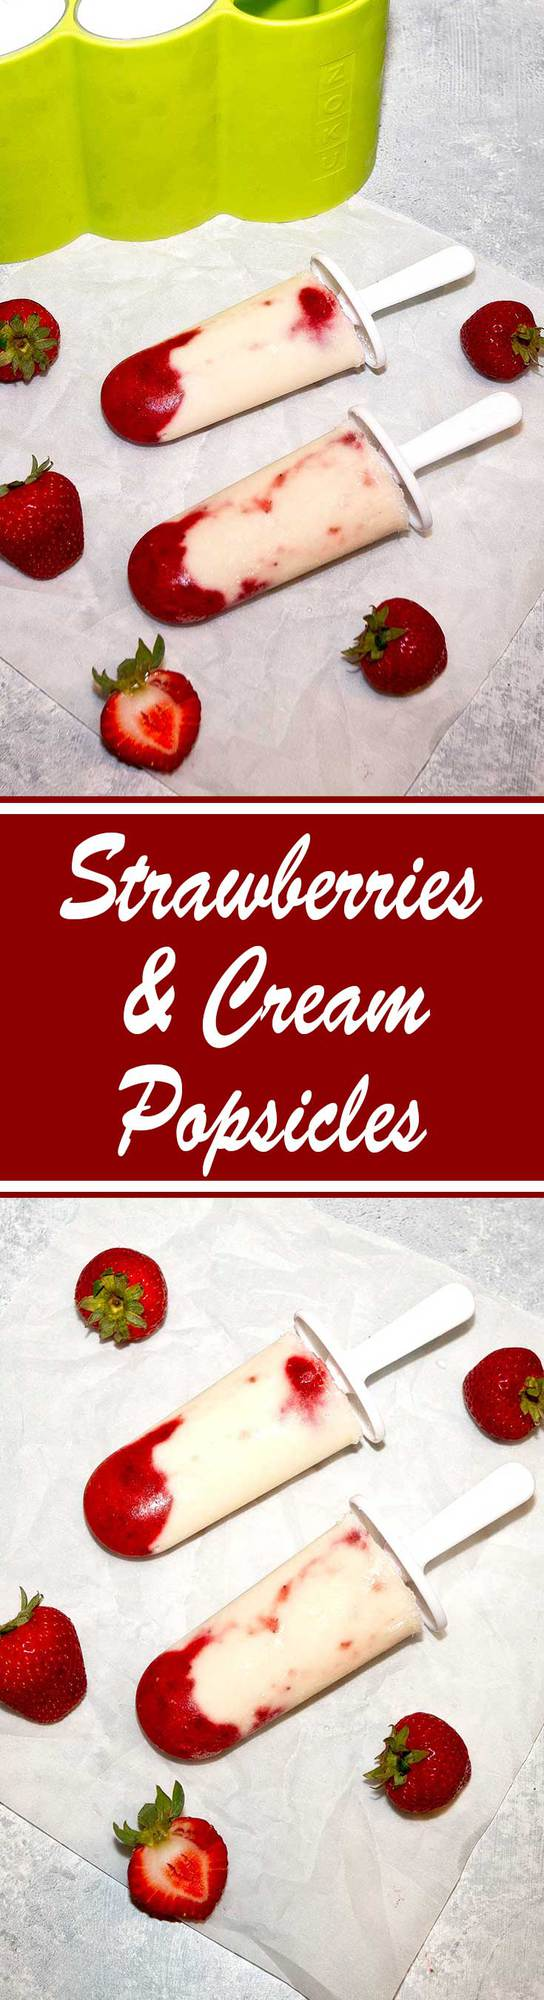 LP-Strawberries-and-Cream-Popsicles